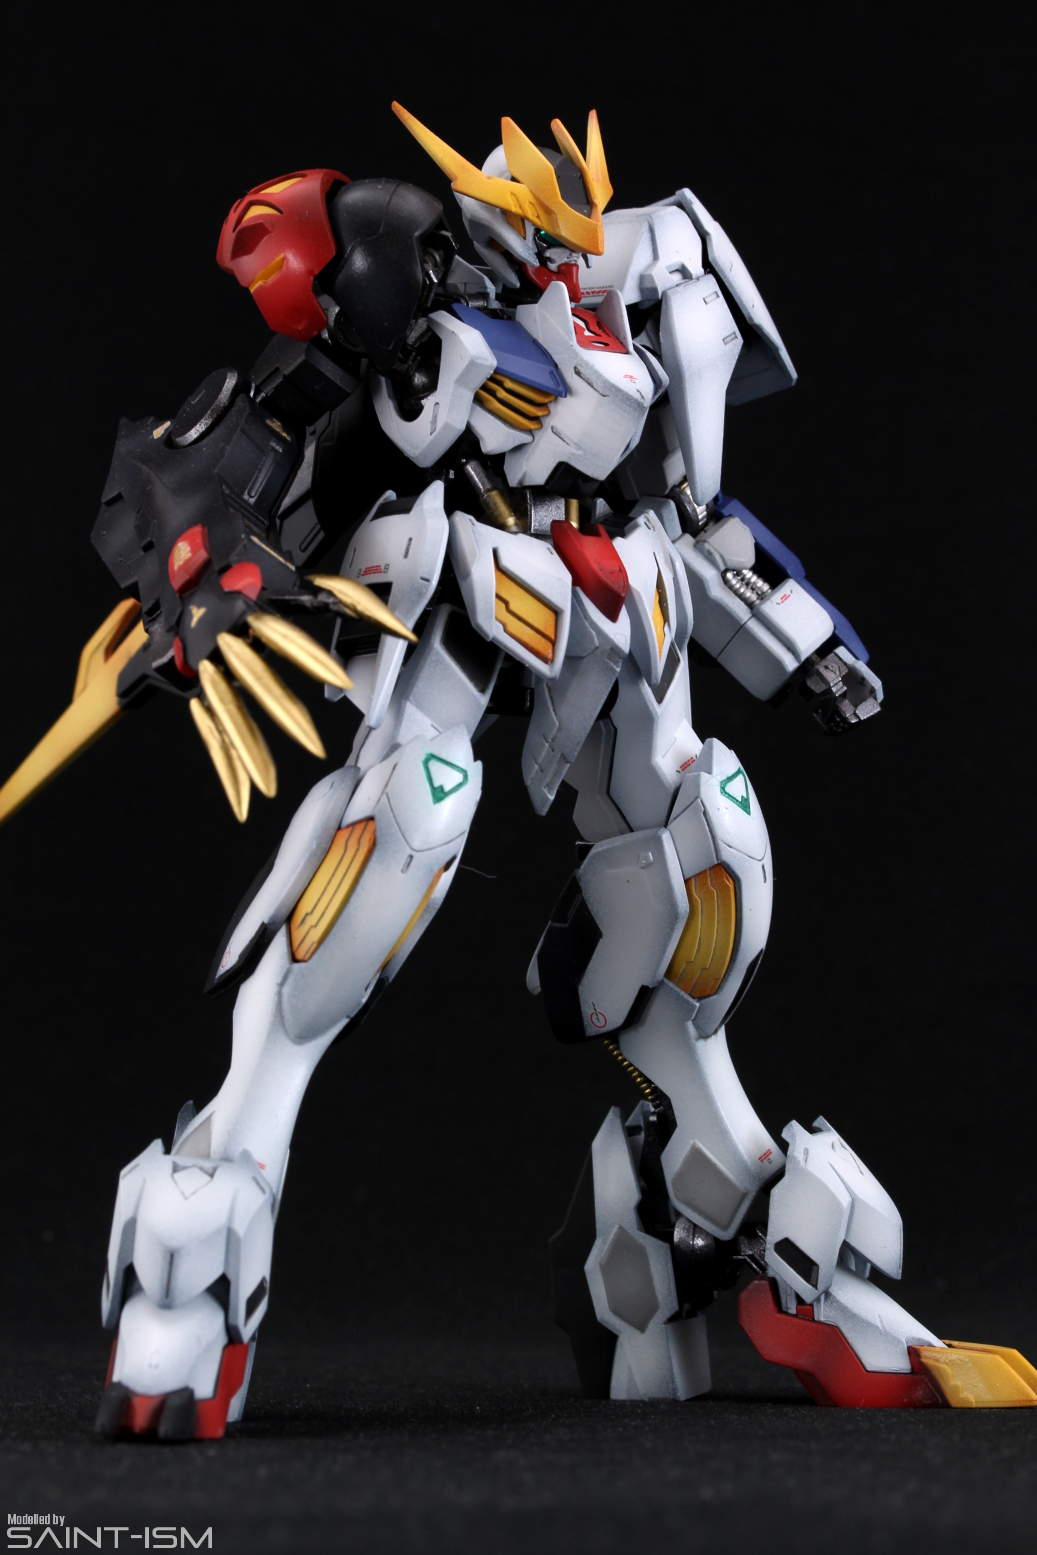 Hg Barbatos Lupus Rex Type 02 Preview Saint Ism Gaming Gunpla Digital Art Gundam barbatos lupus rex appears for the first time in the sd line and includes both sd and cs frames. hg barbatos lupus rex type 02 preview